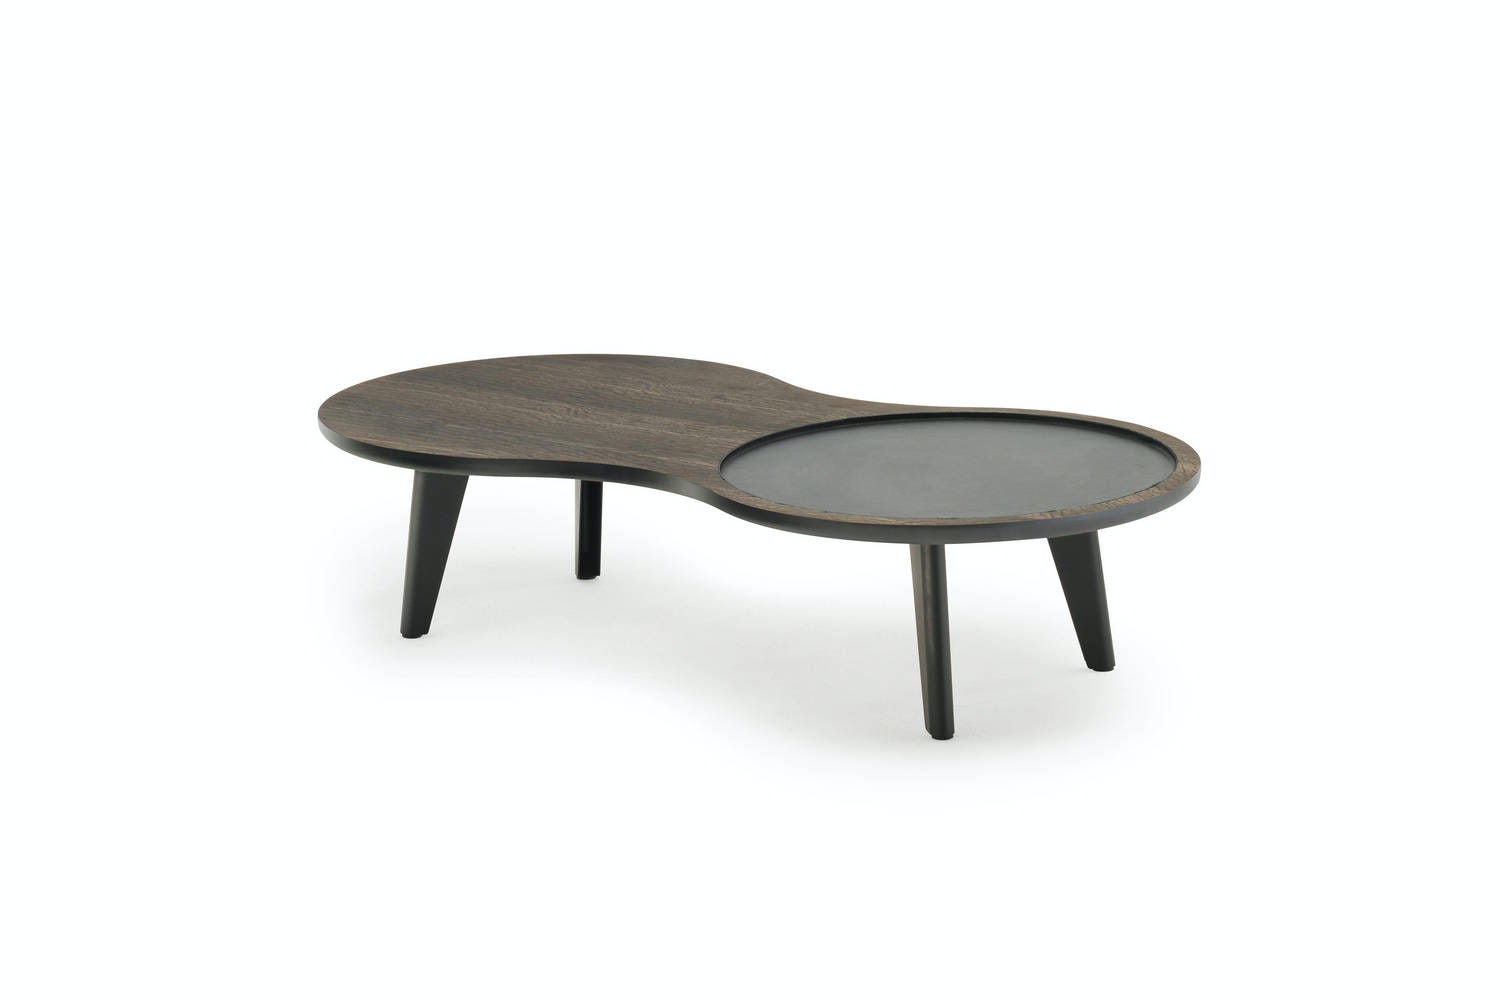 Imago Coffee Table by Mikael Pedersen for Living Divani